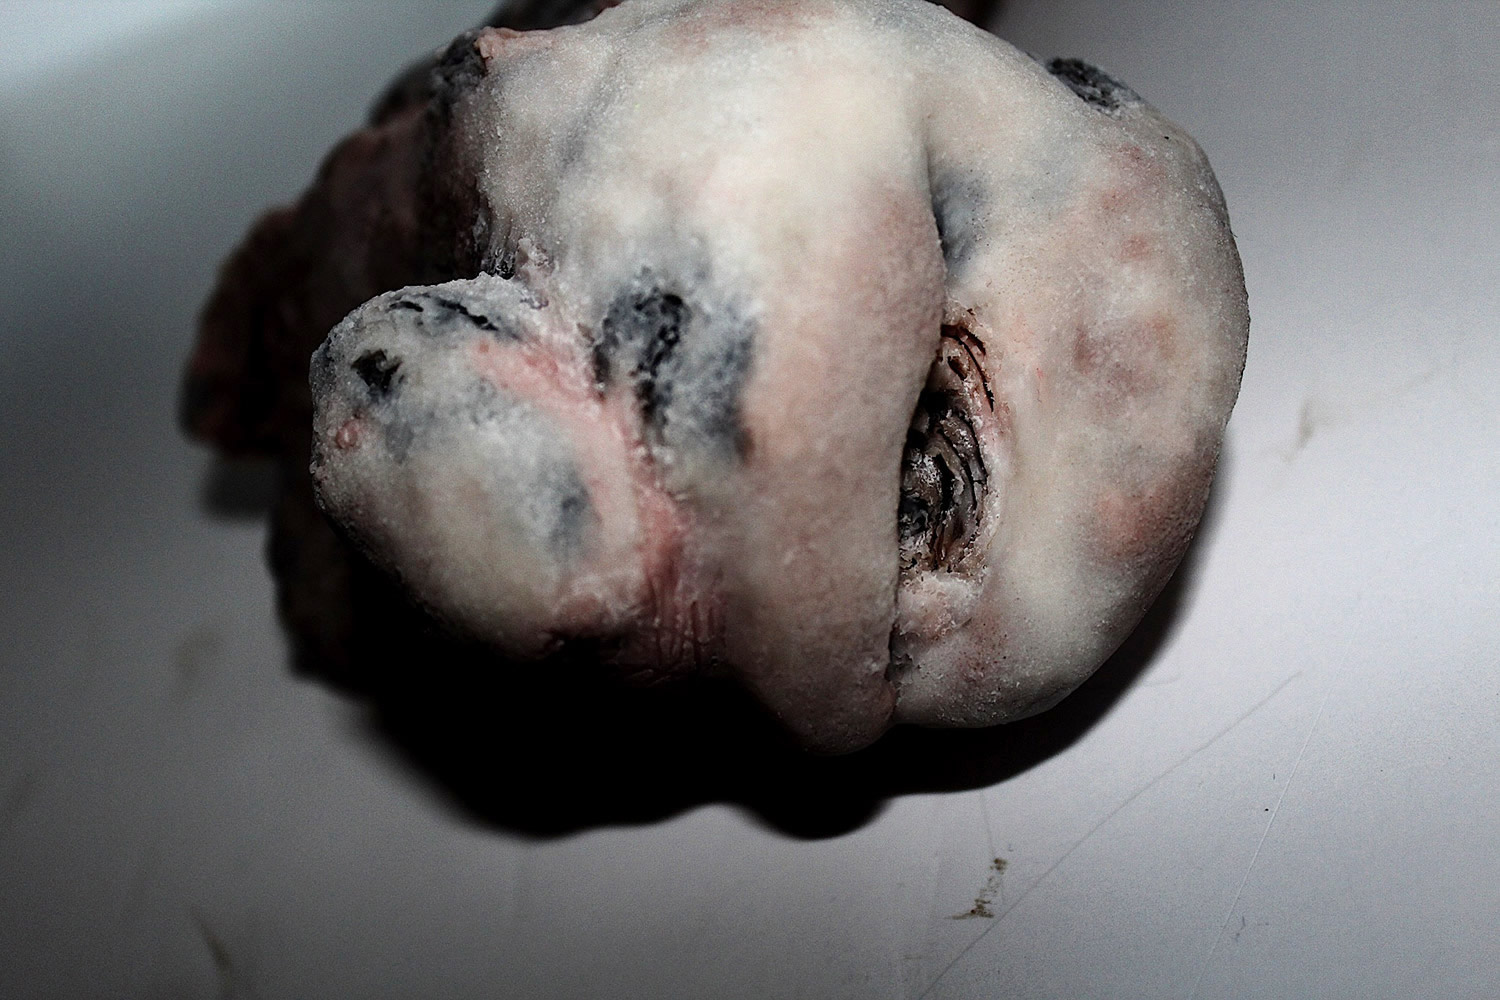 Russel Cameron, sculpture - decaying lump of flesh and bone